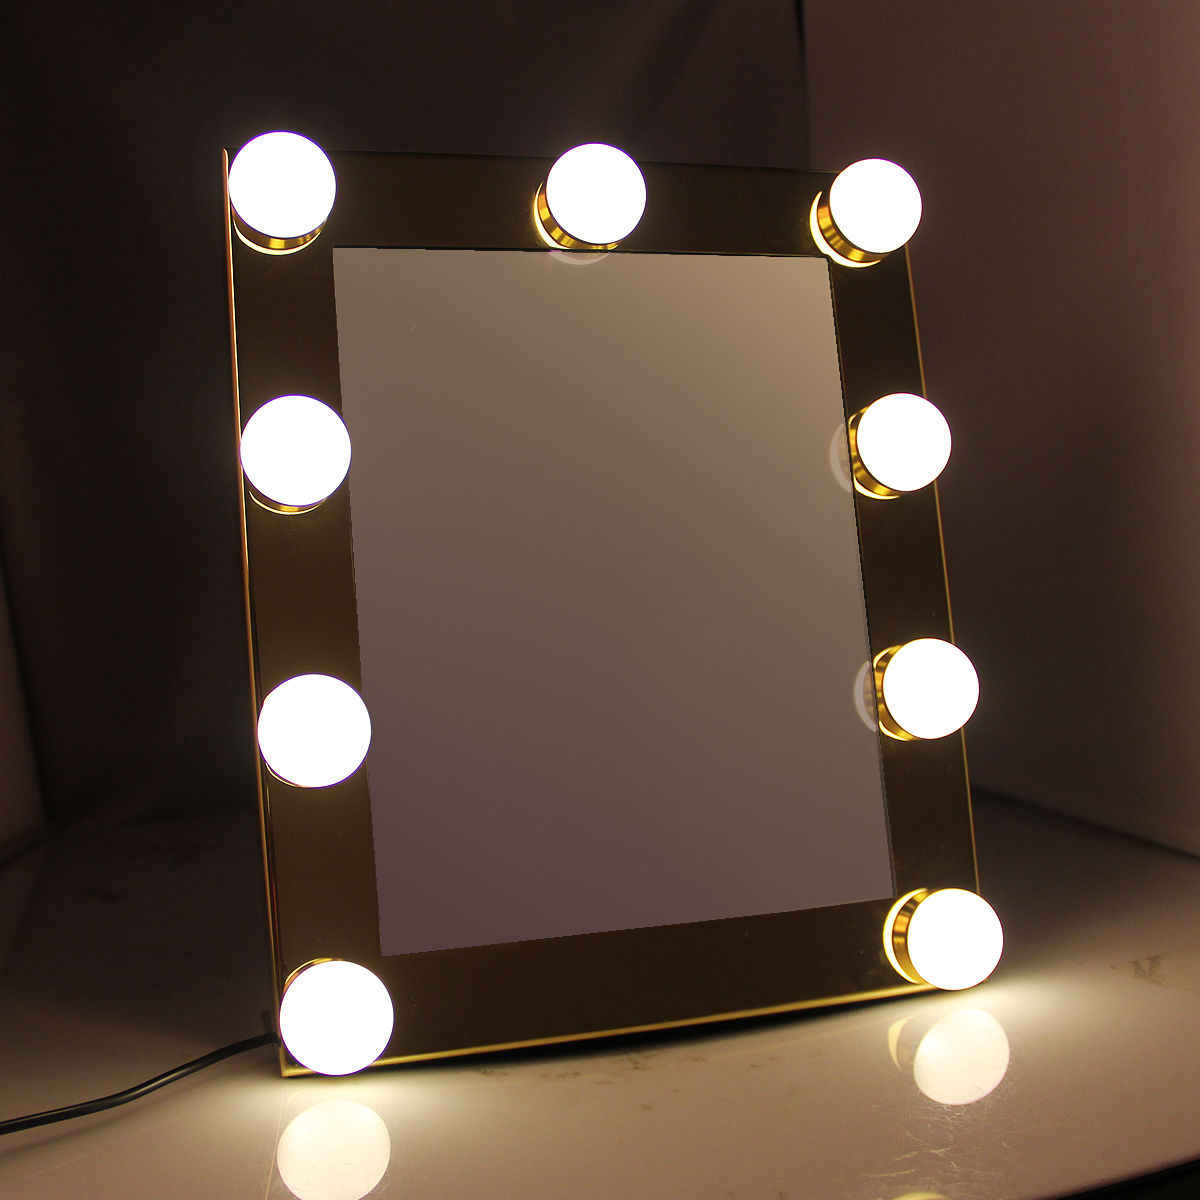 Hollywood Lighted Vanity Makeup Mirror Tabletop Dimmable 9 Led Bulb Lights Touch Control LED Makeup Mirror Beauty Tool 2018 dimmable hollywood makeup vanity mirror with light large lighted tabletop cosmetic mirror with 9pcs touch control led bulbs